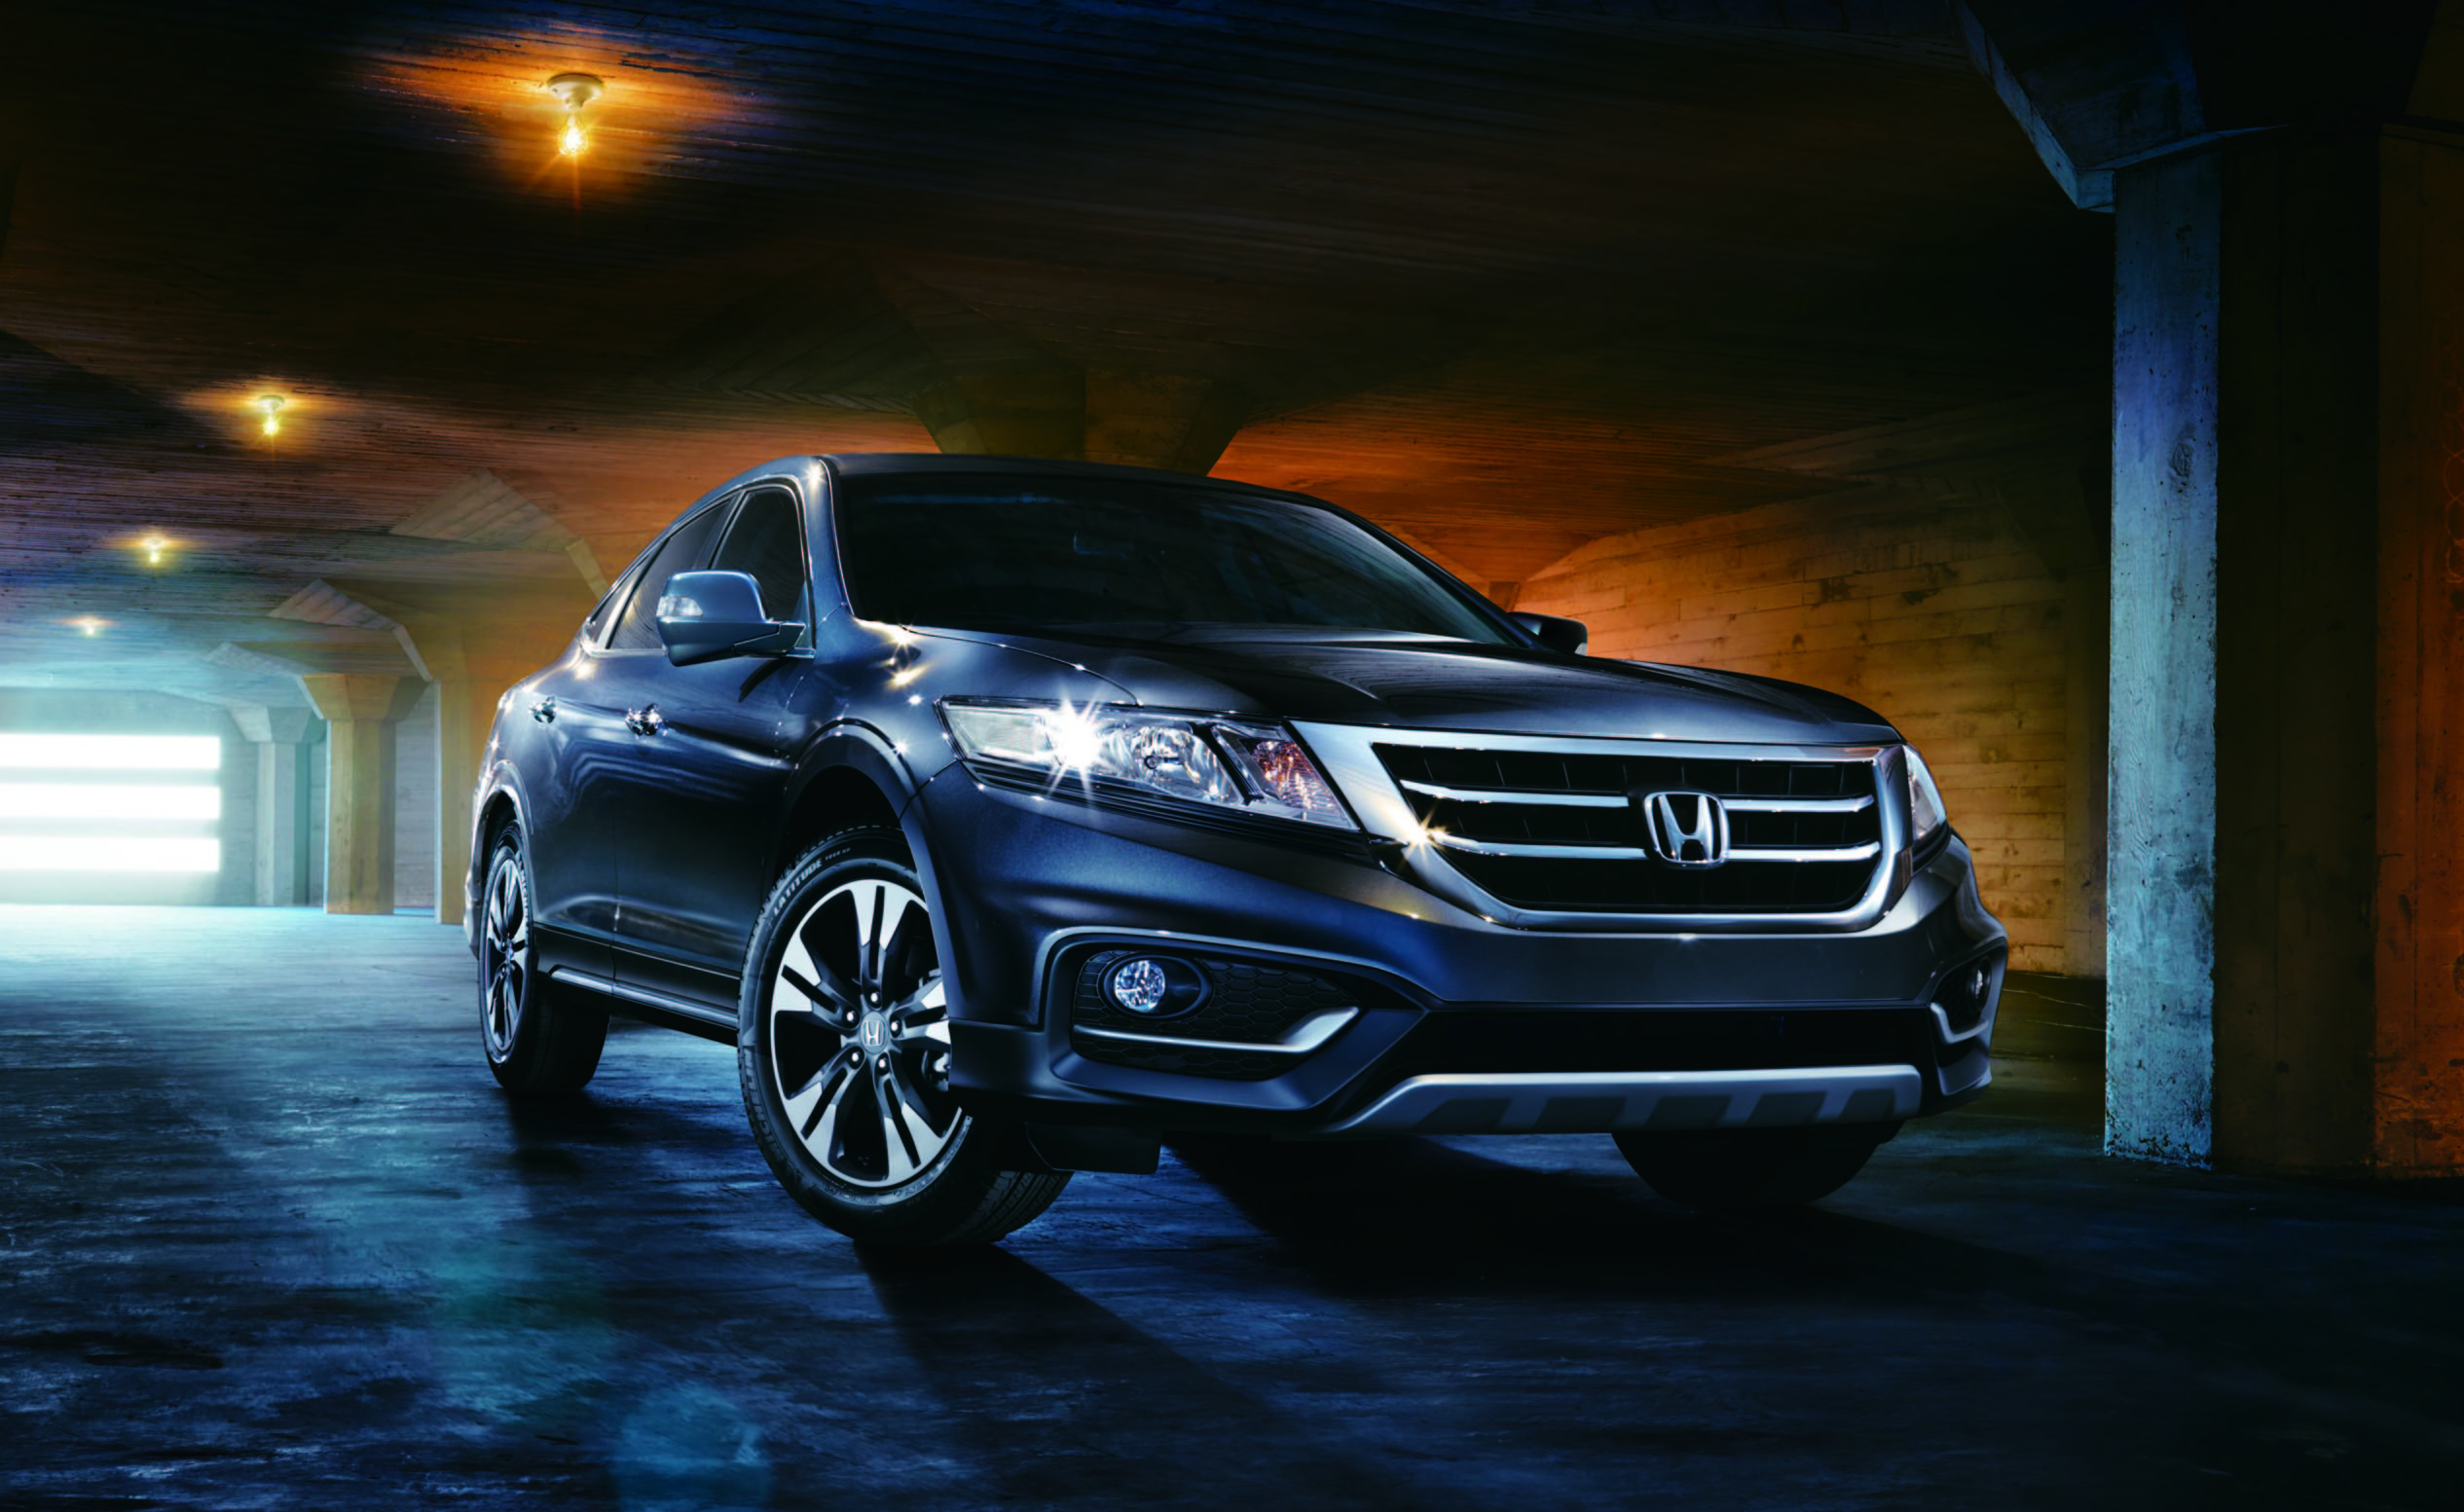 dch lease lx sedan paramus nj used current specials crosstour honda cvt civic near